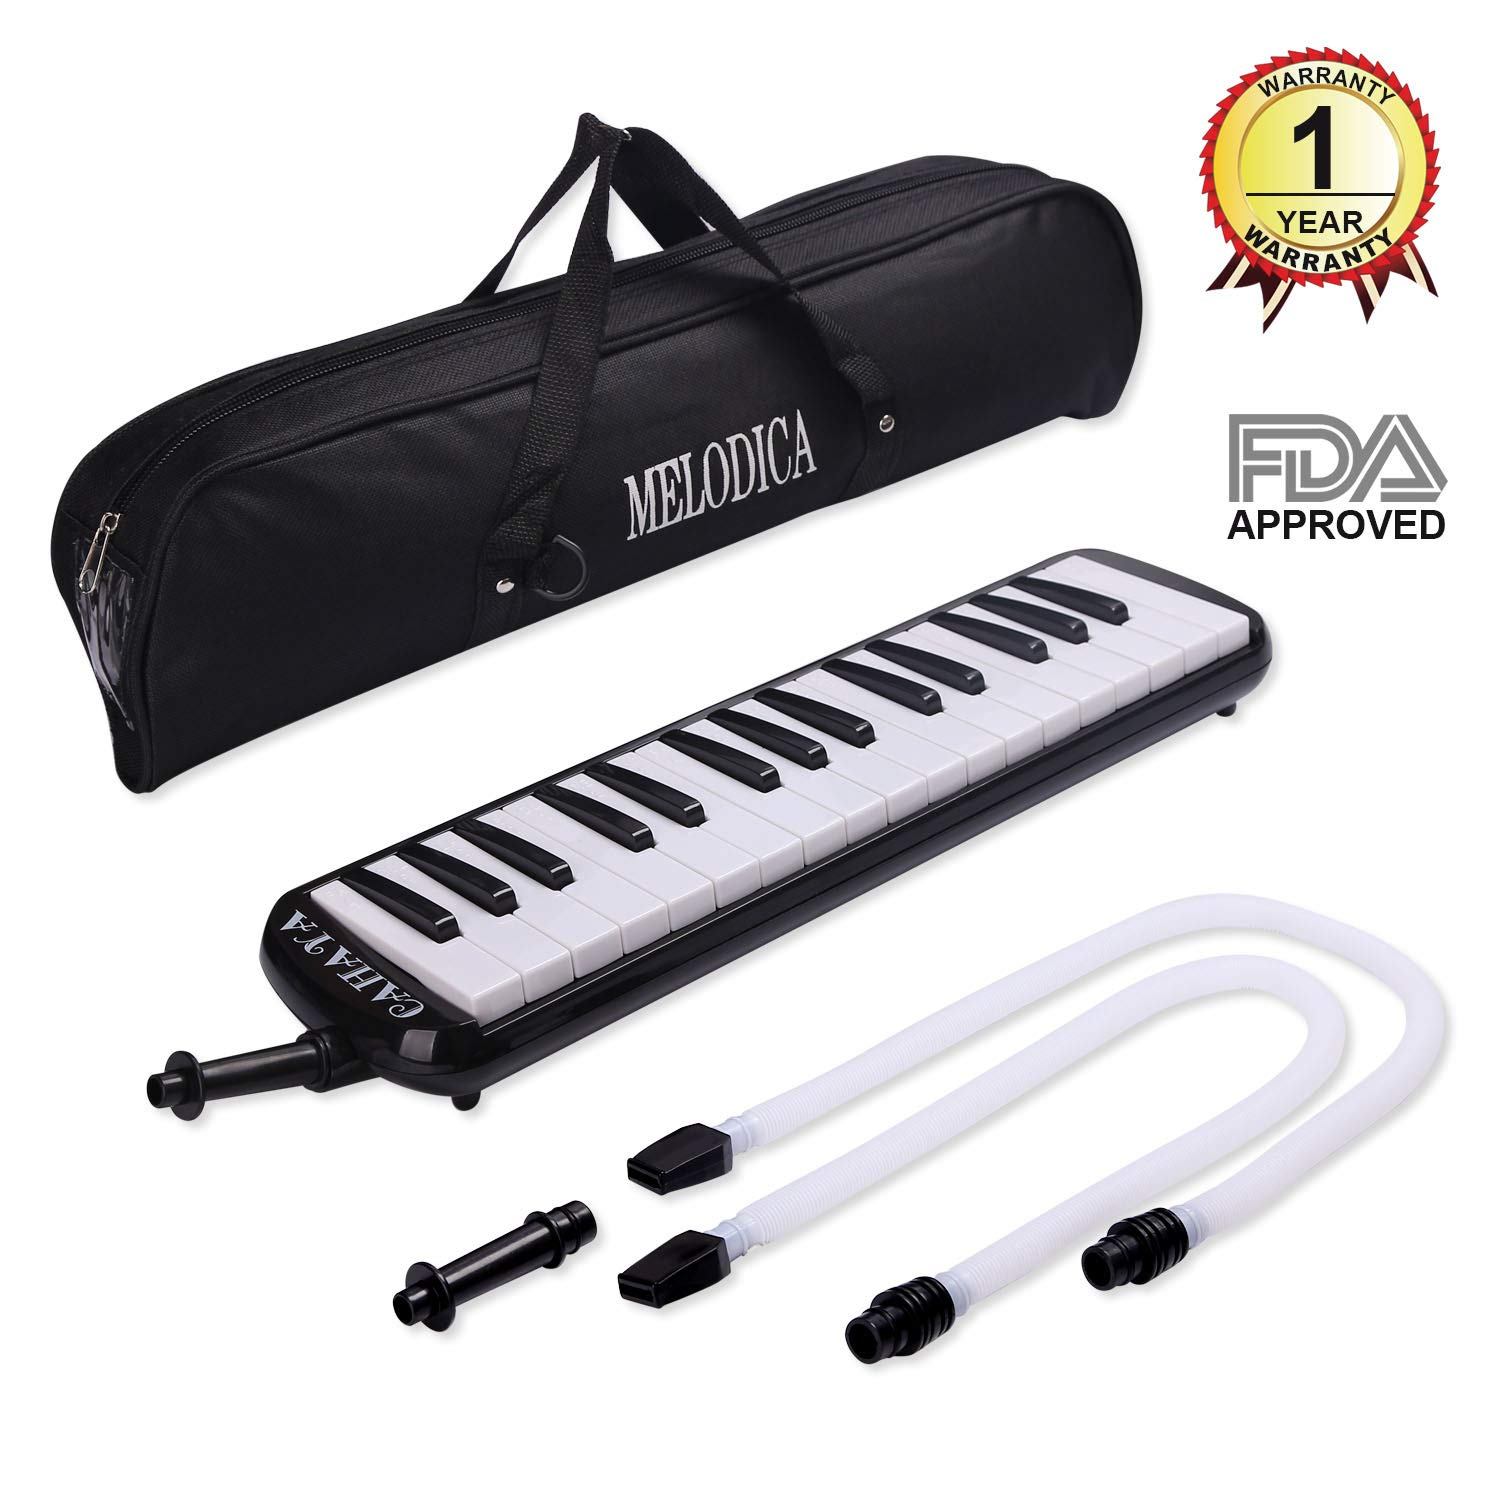 CAHAYA Melodica 32-Key Piano Style Portable Pianica with Plastic Flexible Long Pipe Short Mouthpiece and Carrying Bag for Music Lovers Beginners Kids - Black CY0050-1